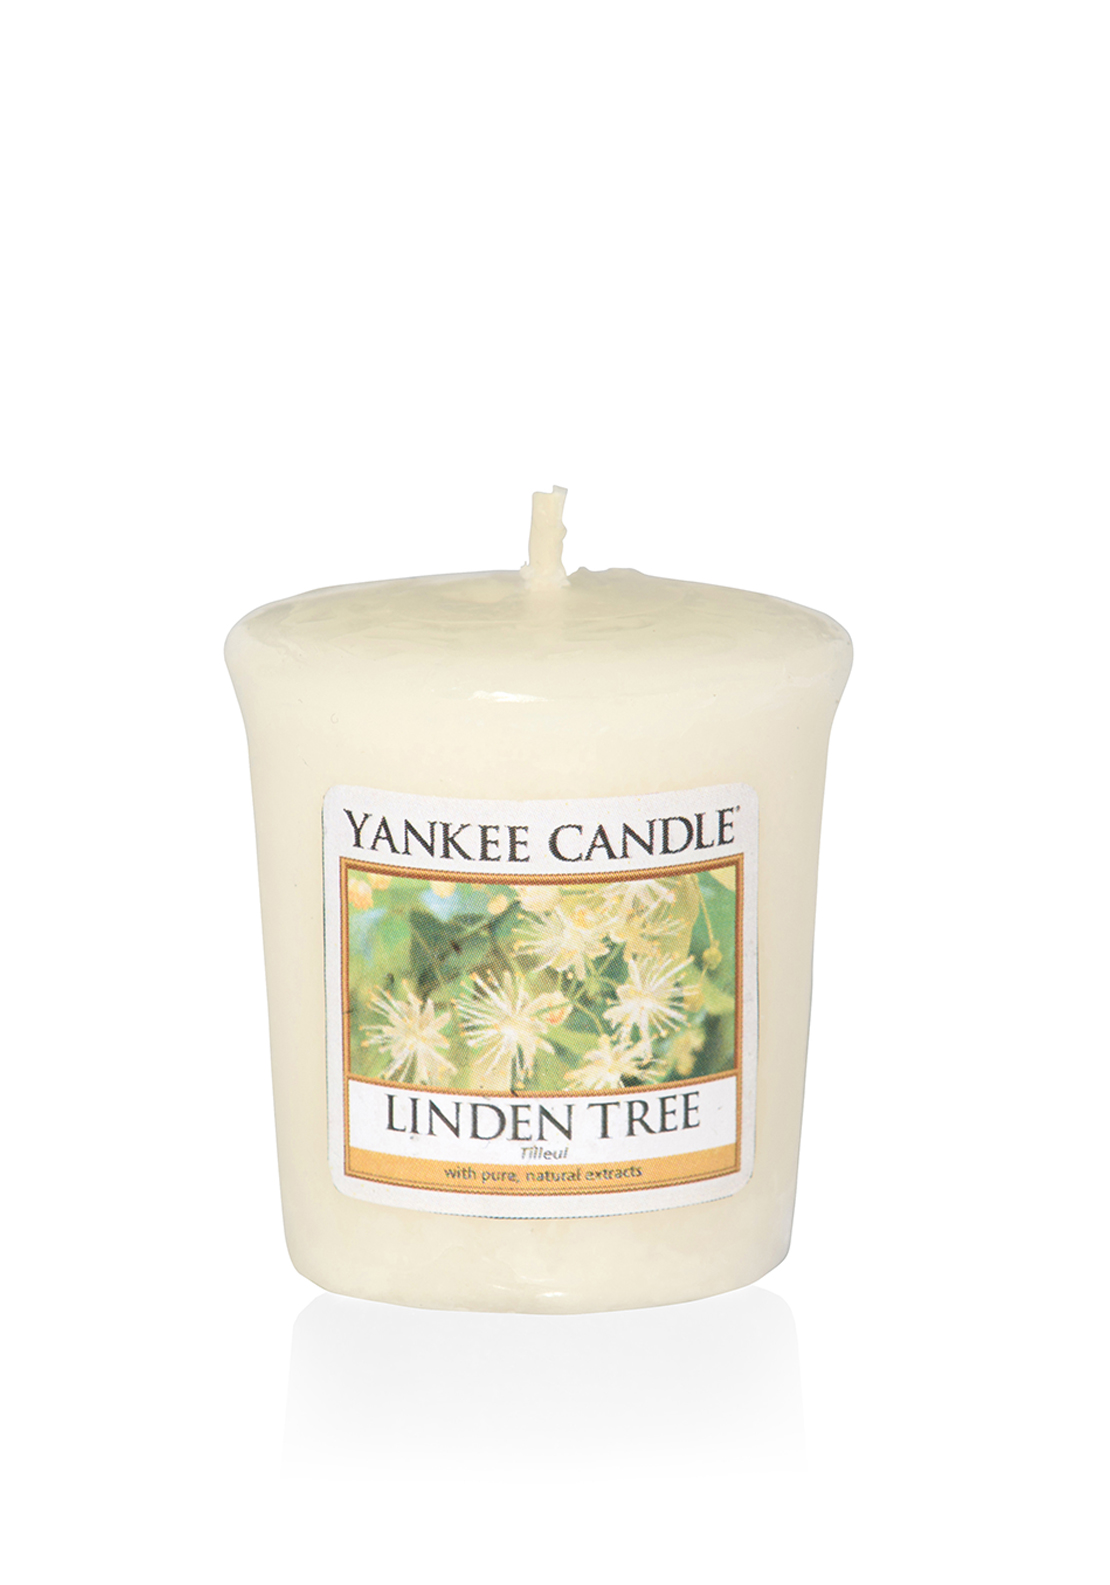 Yankee Candle Votive Candle, Linden Tree